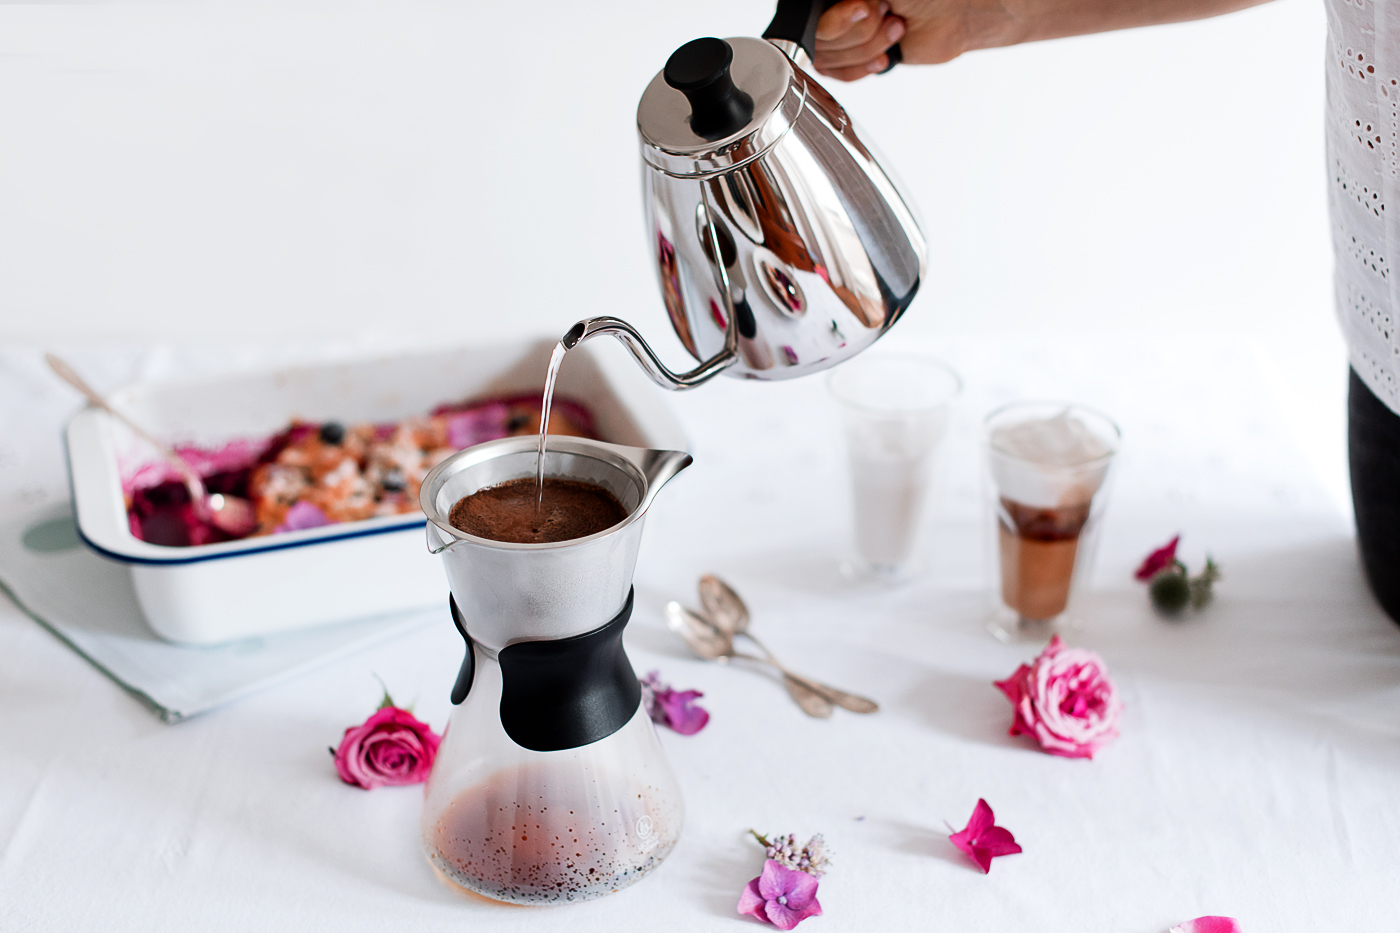 Food: Gratin of Summer Berries & Leopold Vienna Slow Coffee Maker Give away